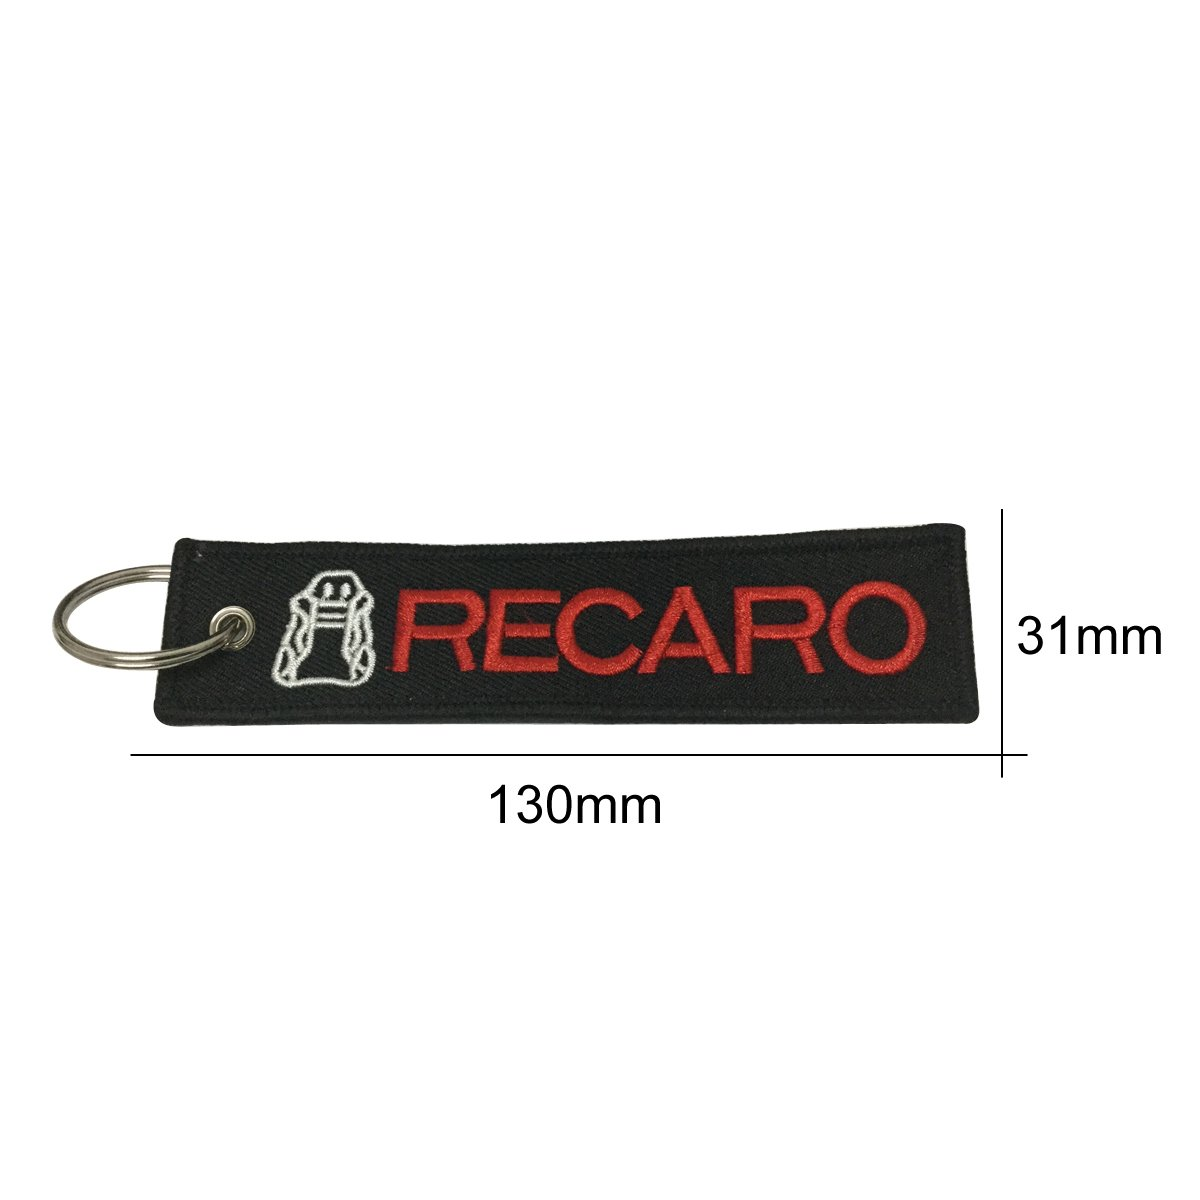 Recaro Tag Keychain For Car Auto Accessories Motorcycles Bike Biker Keychain Accessories Gifts Teratai 1pcs